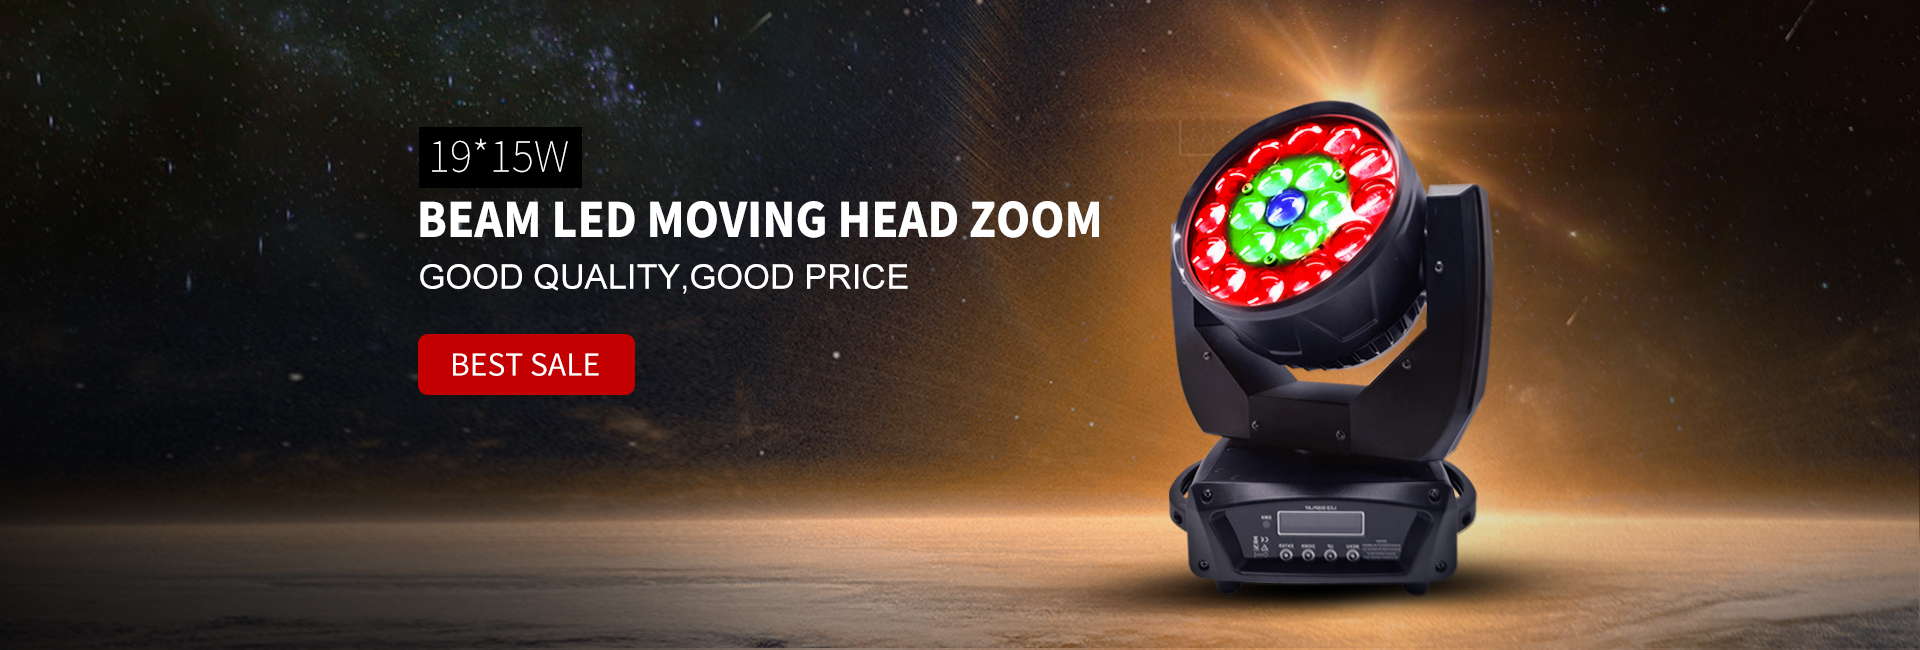 19x15W beam led zoom moving head